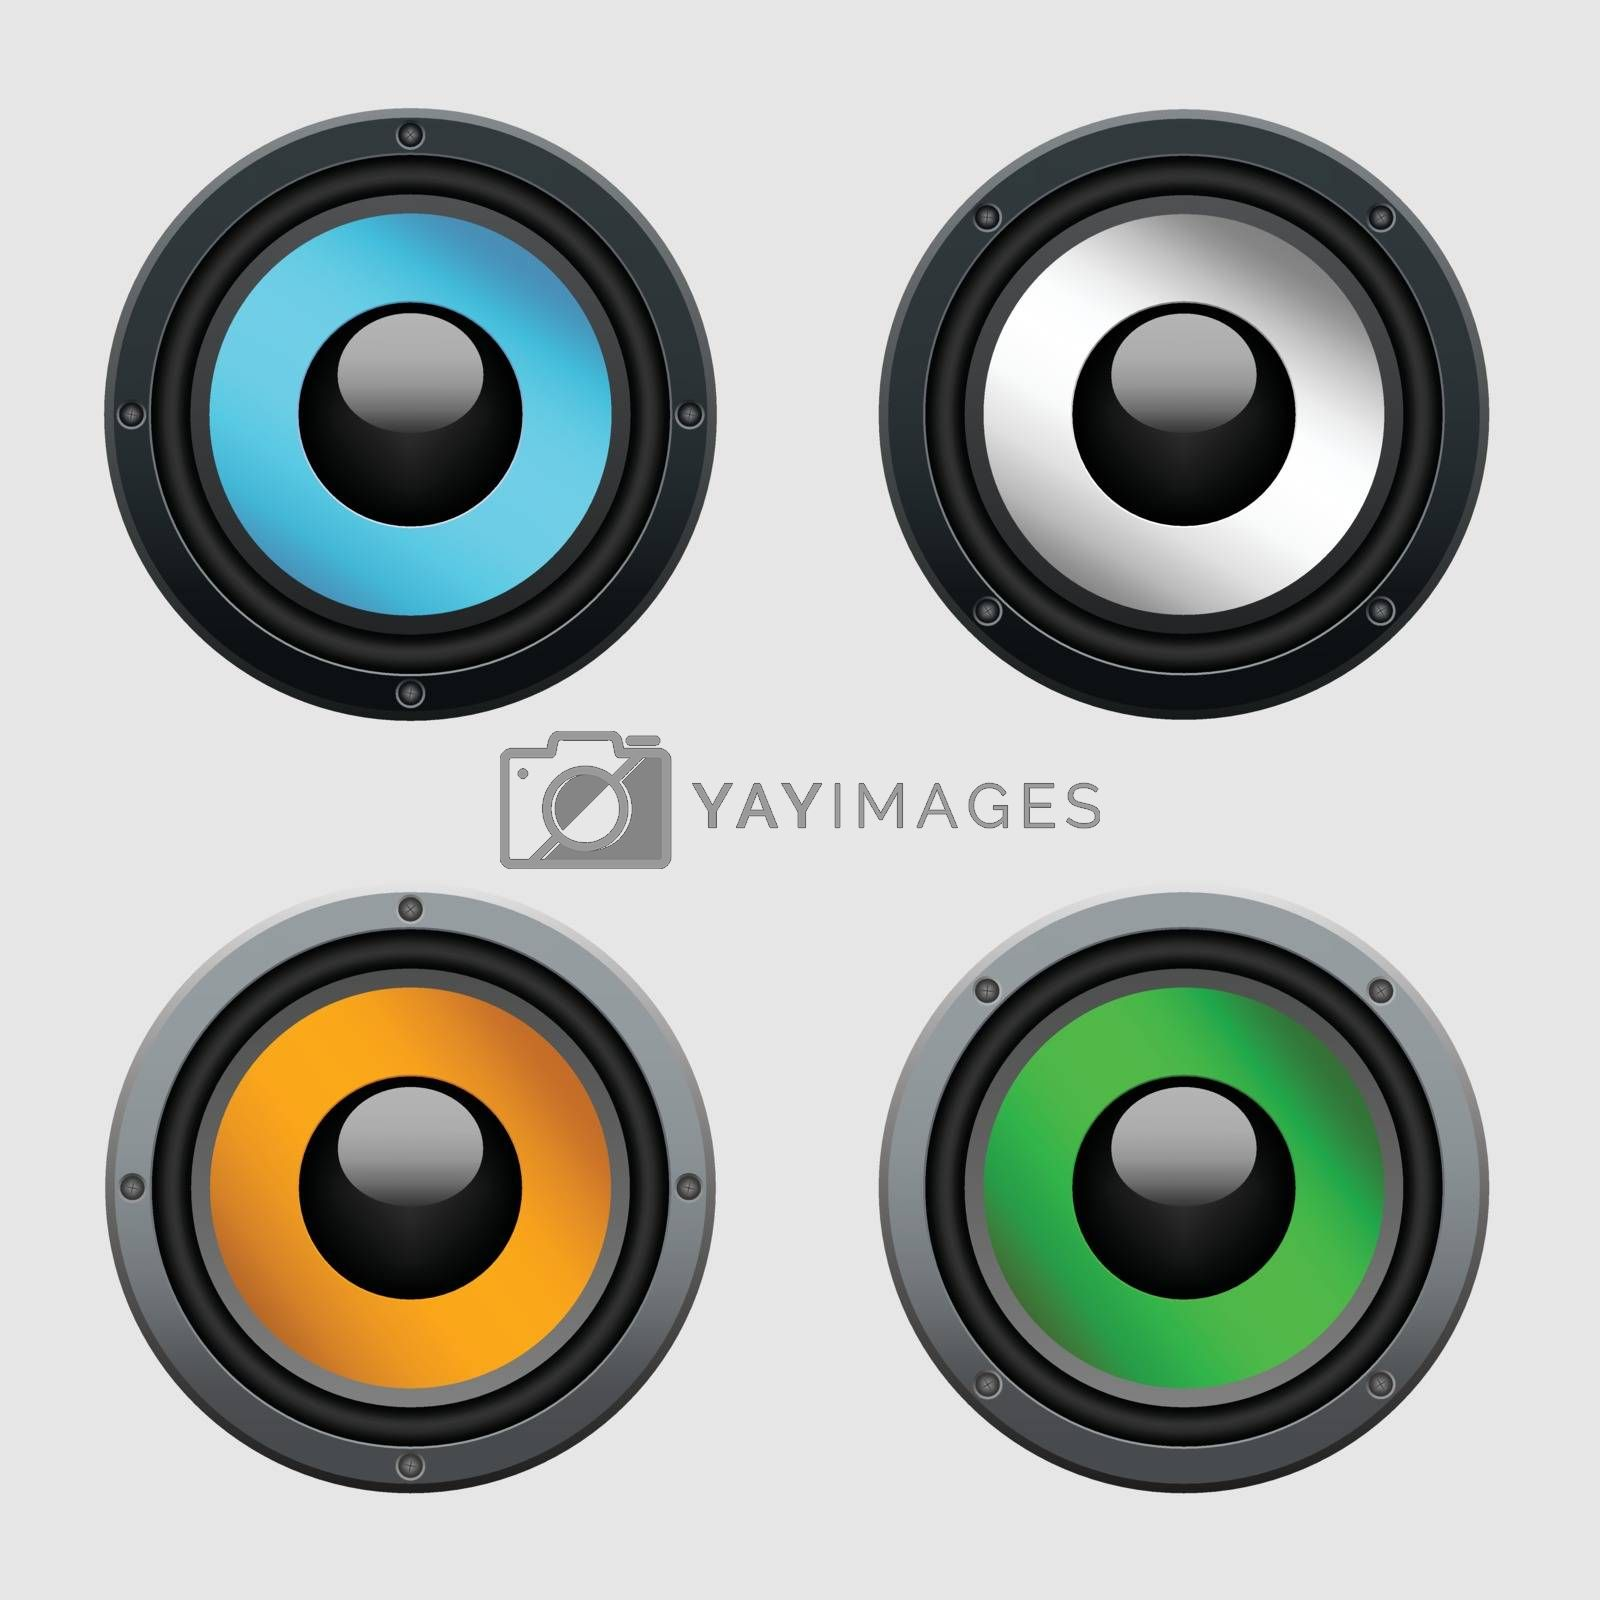 Set of four colorful metallic speakers - realistic illustration